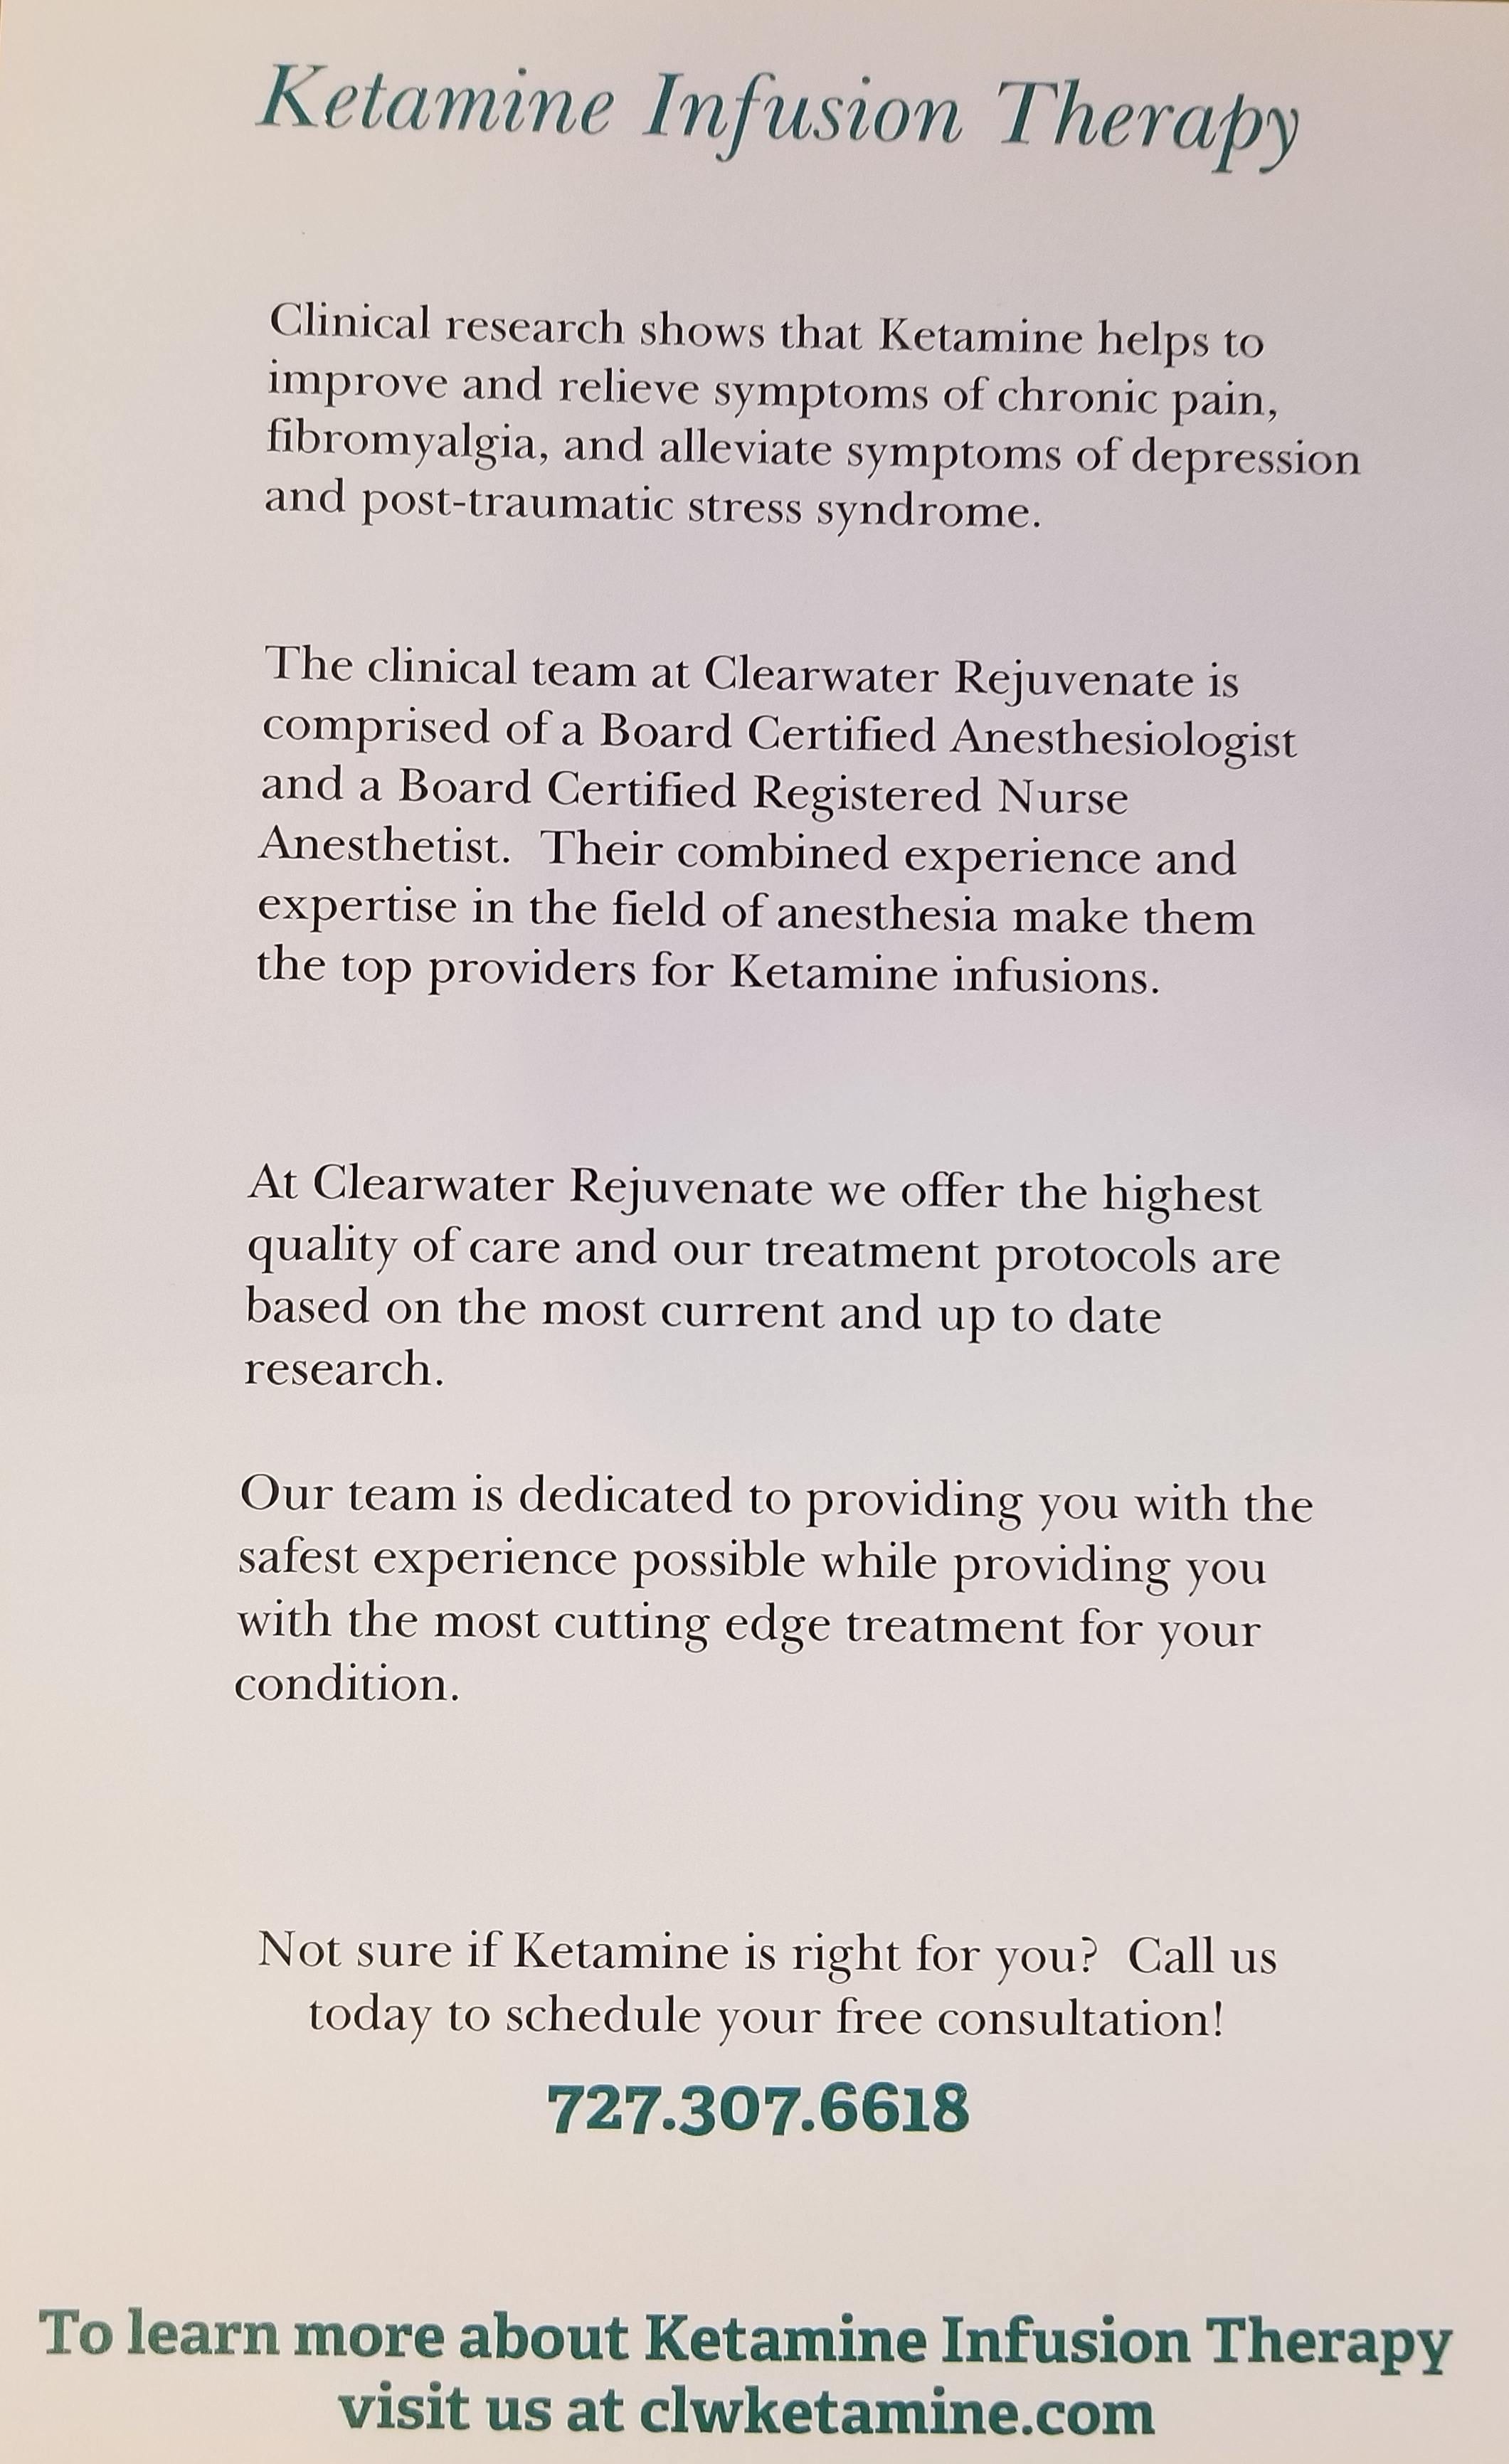 Ketamine Infusion Therapy